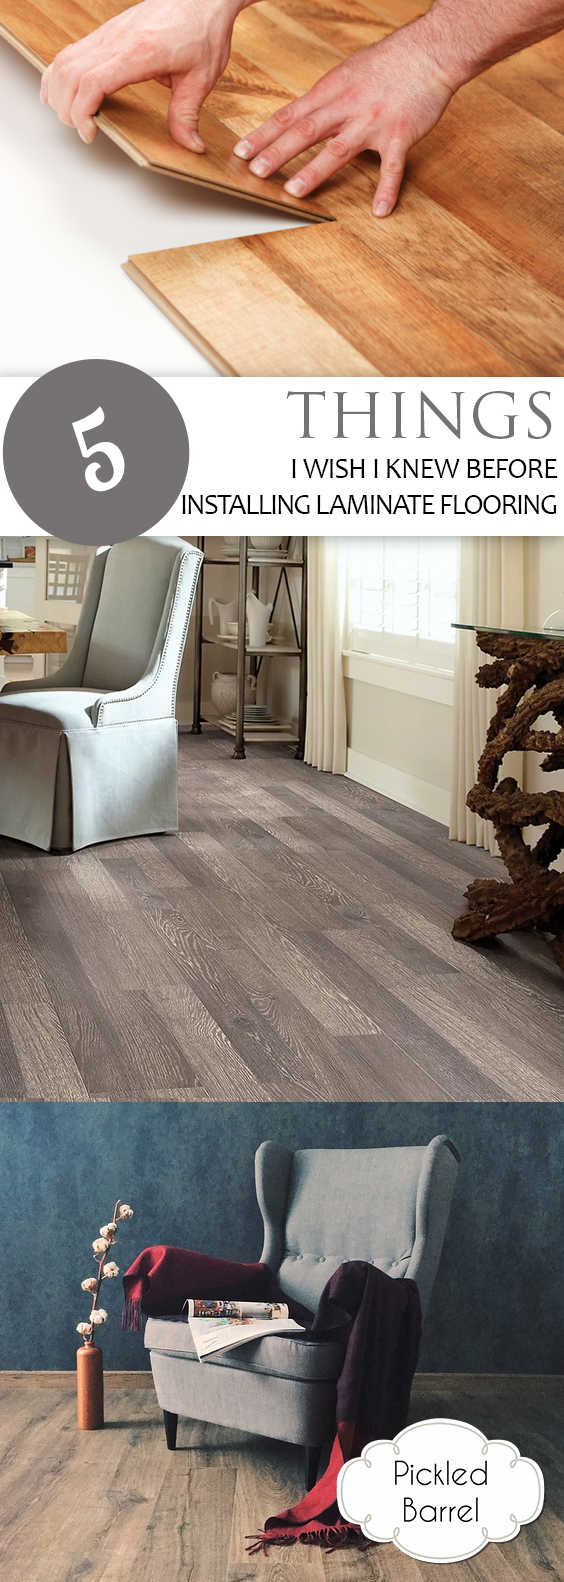 5 Things I Wish I Knew Before Installing Laminate Flooring| Laminate Flooring, How to Install New Flooring, Home Flooring, Home Remodel, Home Remodeling Tips #LaminateFlooring #Flooring #HomeFlooring